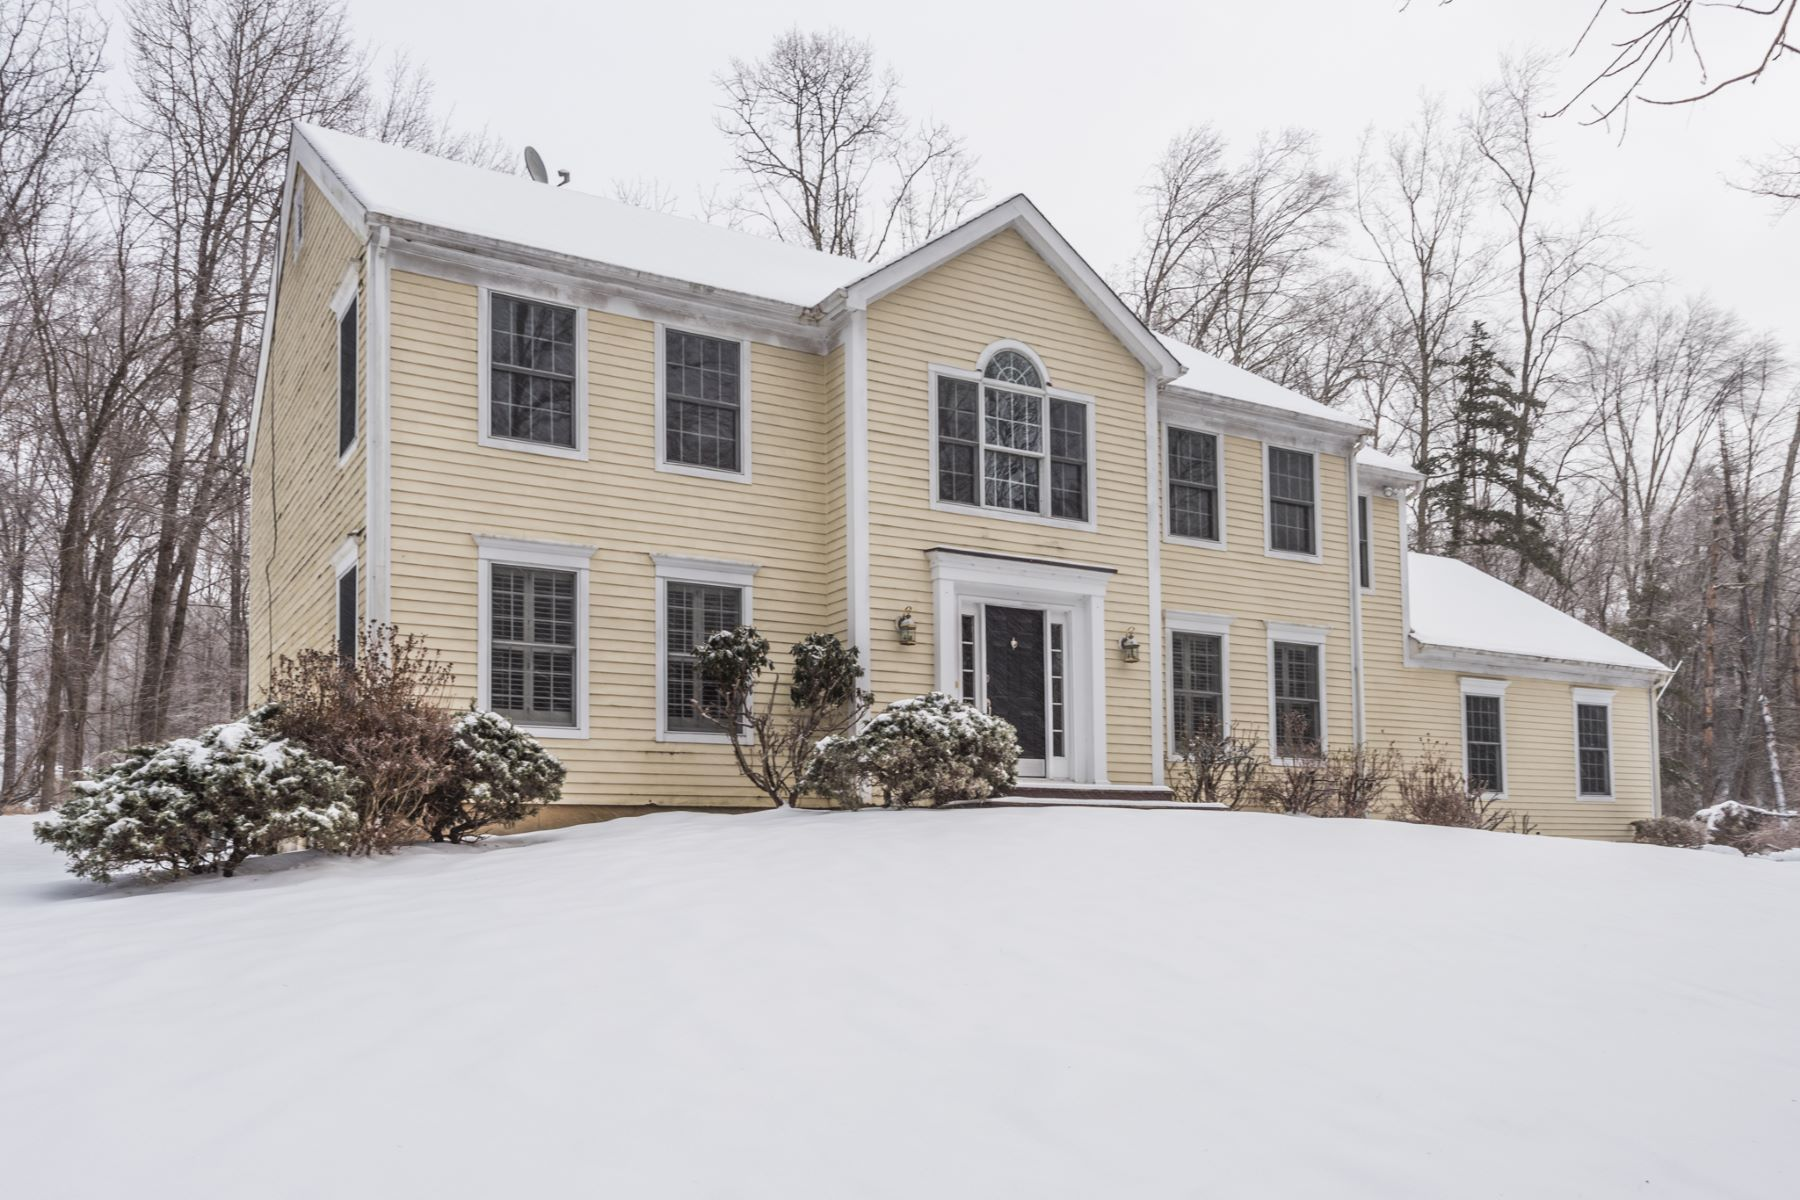 Single Family Home for Sale at Impeccable Colonial Home 53 Riverford Rd Brookfield, Connecticut 06804 United States